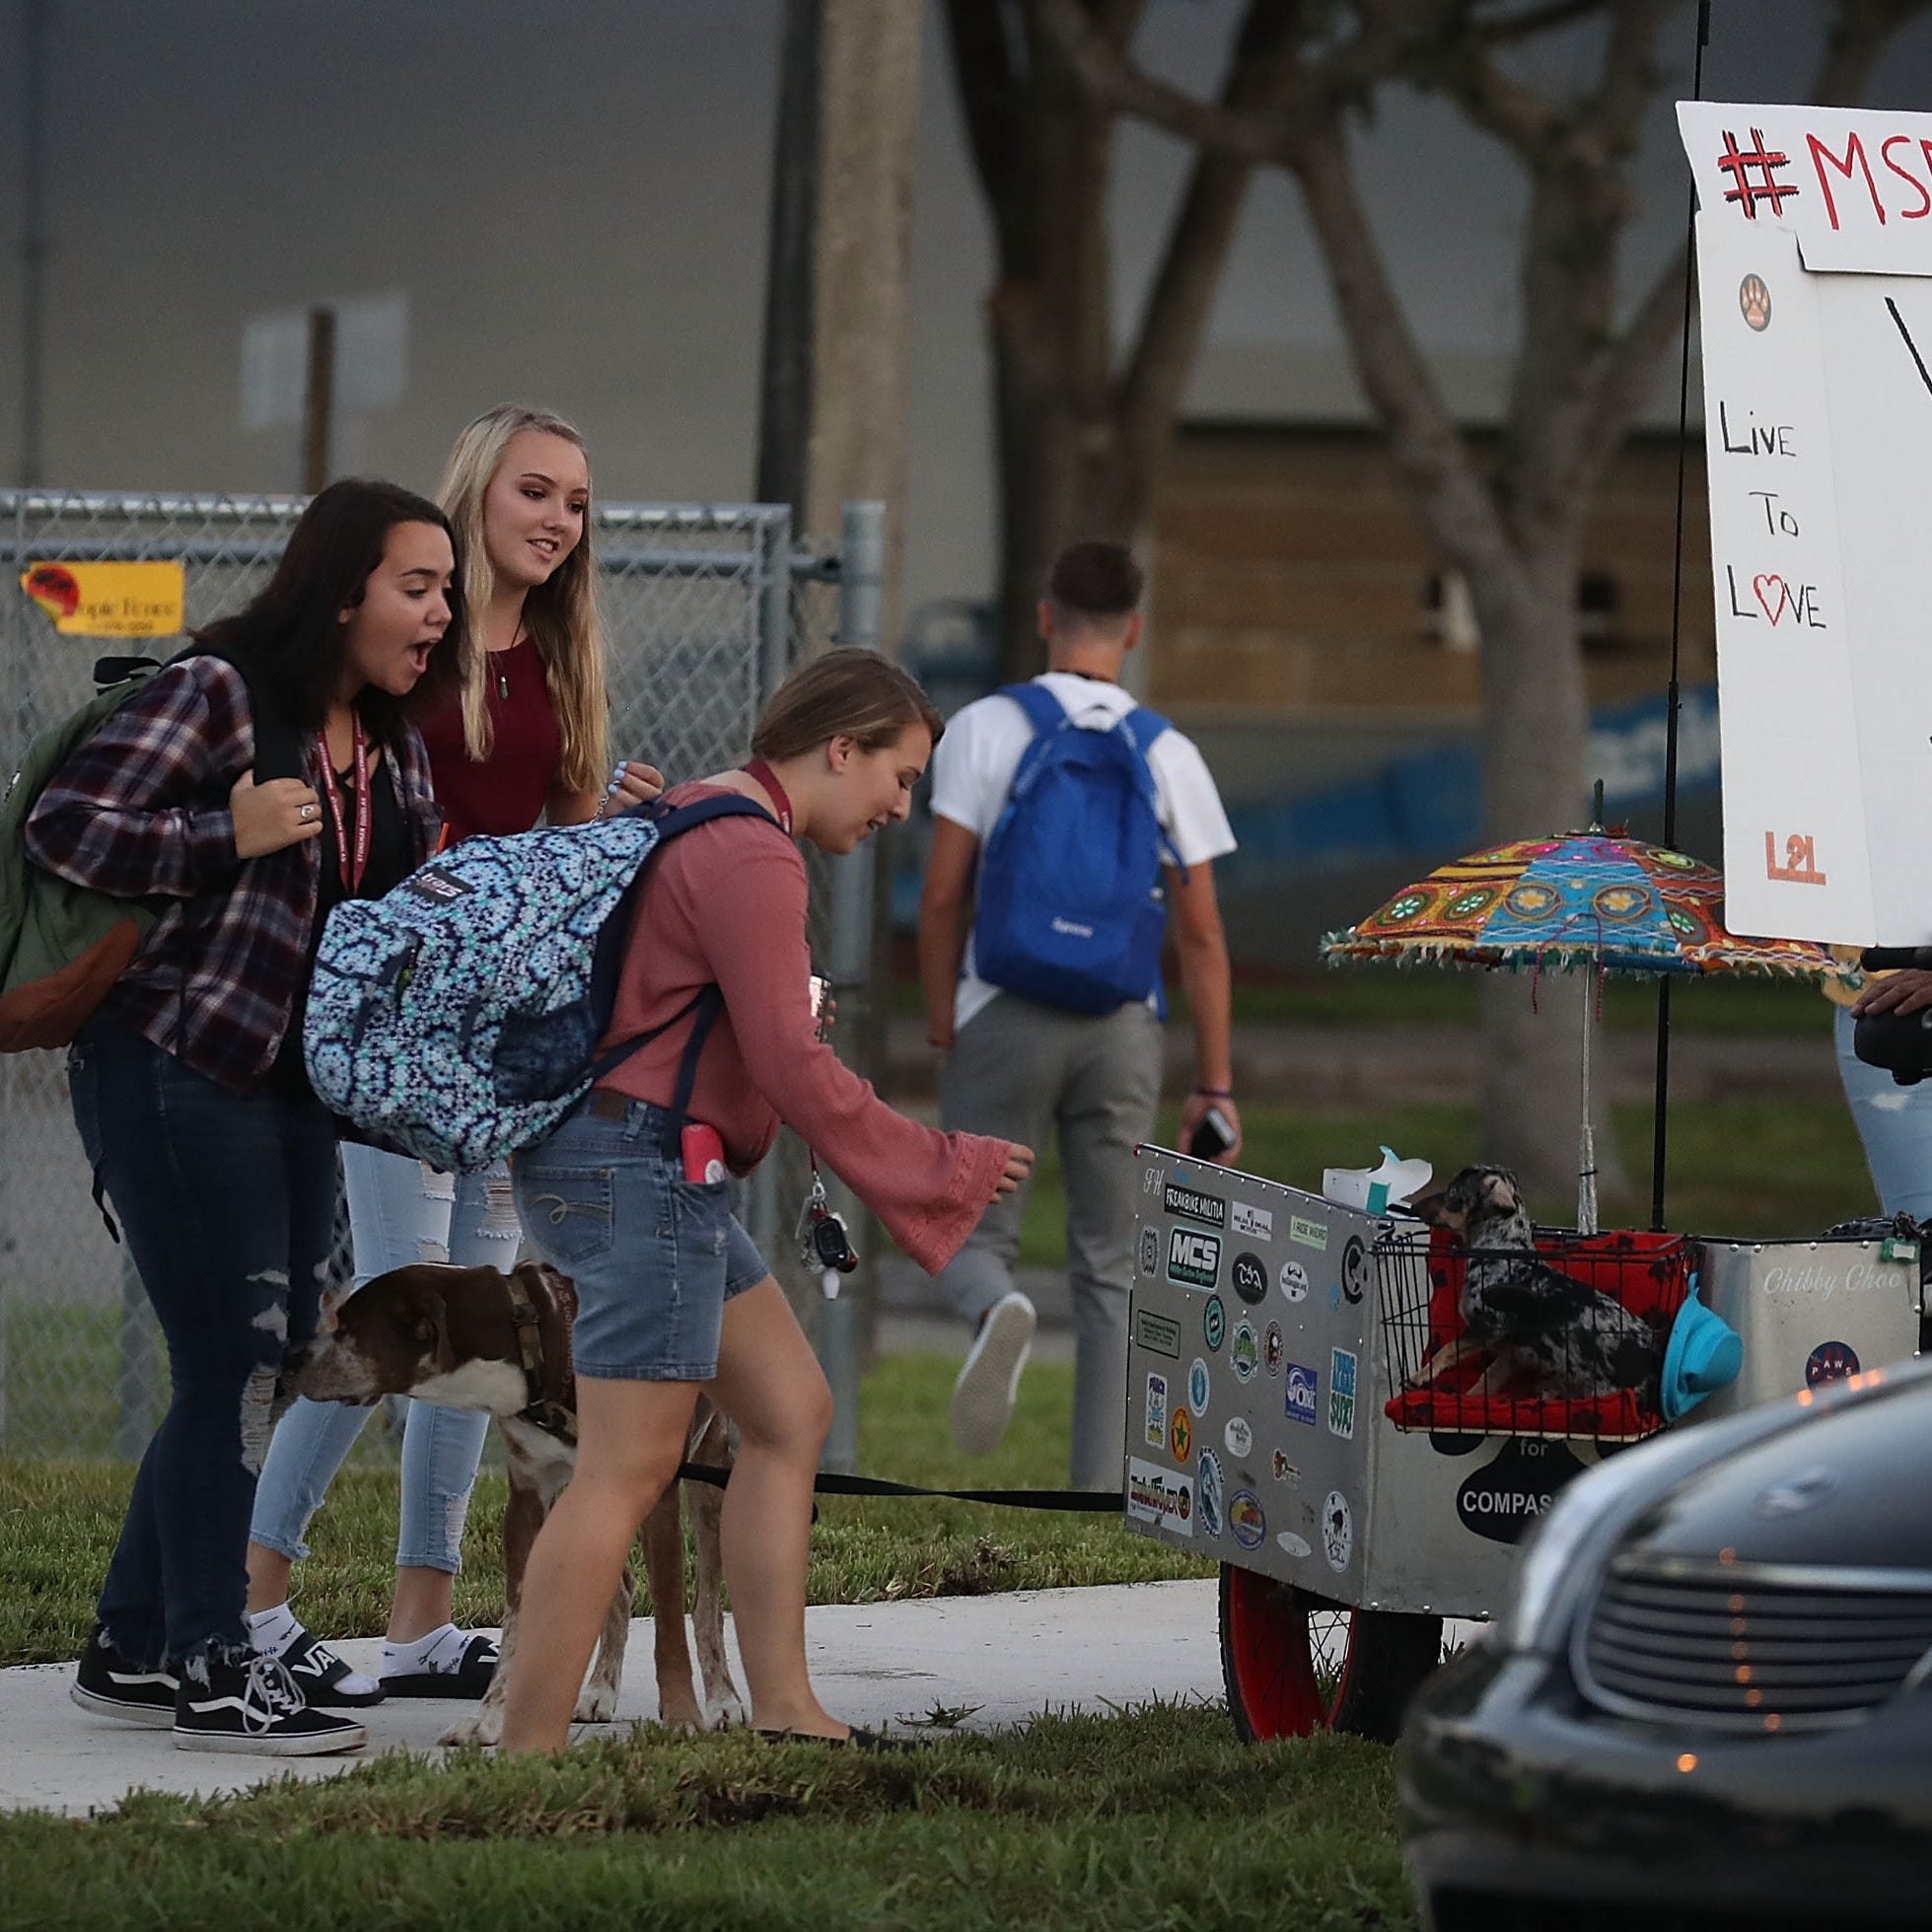 Principal of Parkland, Florida school where 17 were slain announces he will resign